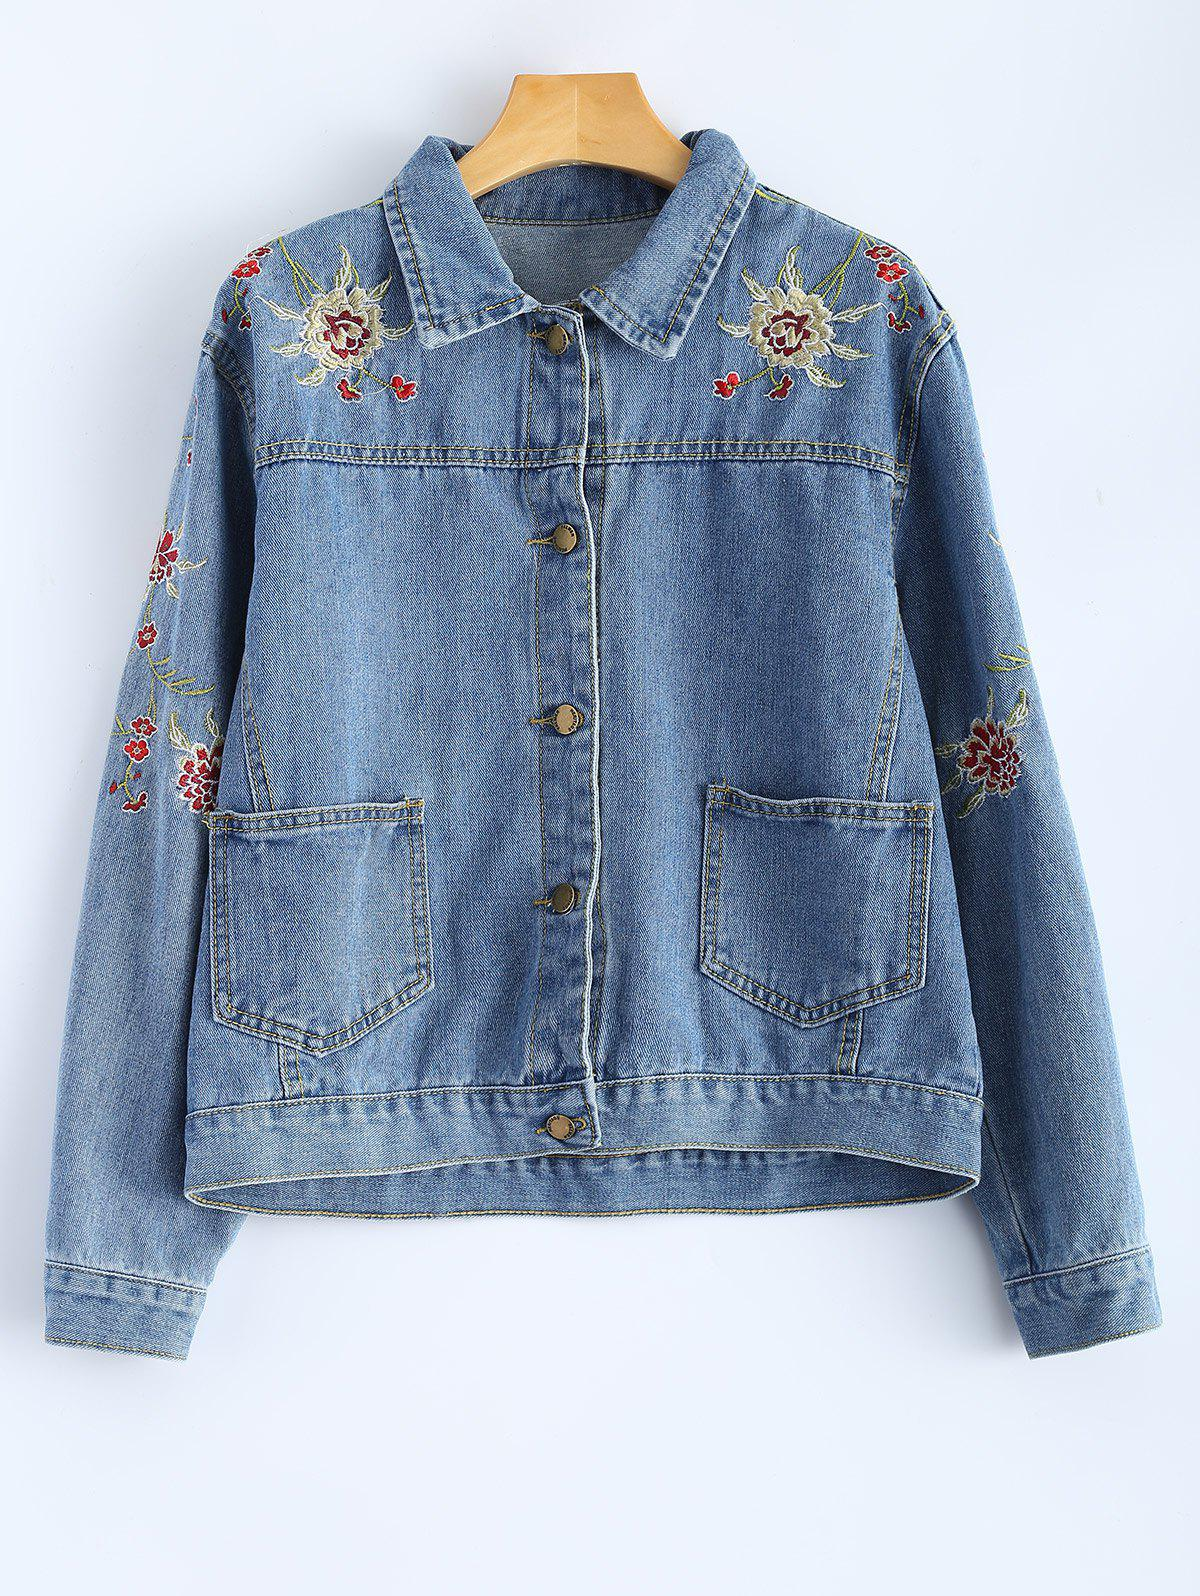 Shirt Neck Retro Floral Embroidered Denim Jacket - DENIM BLUE S